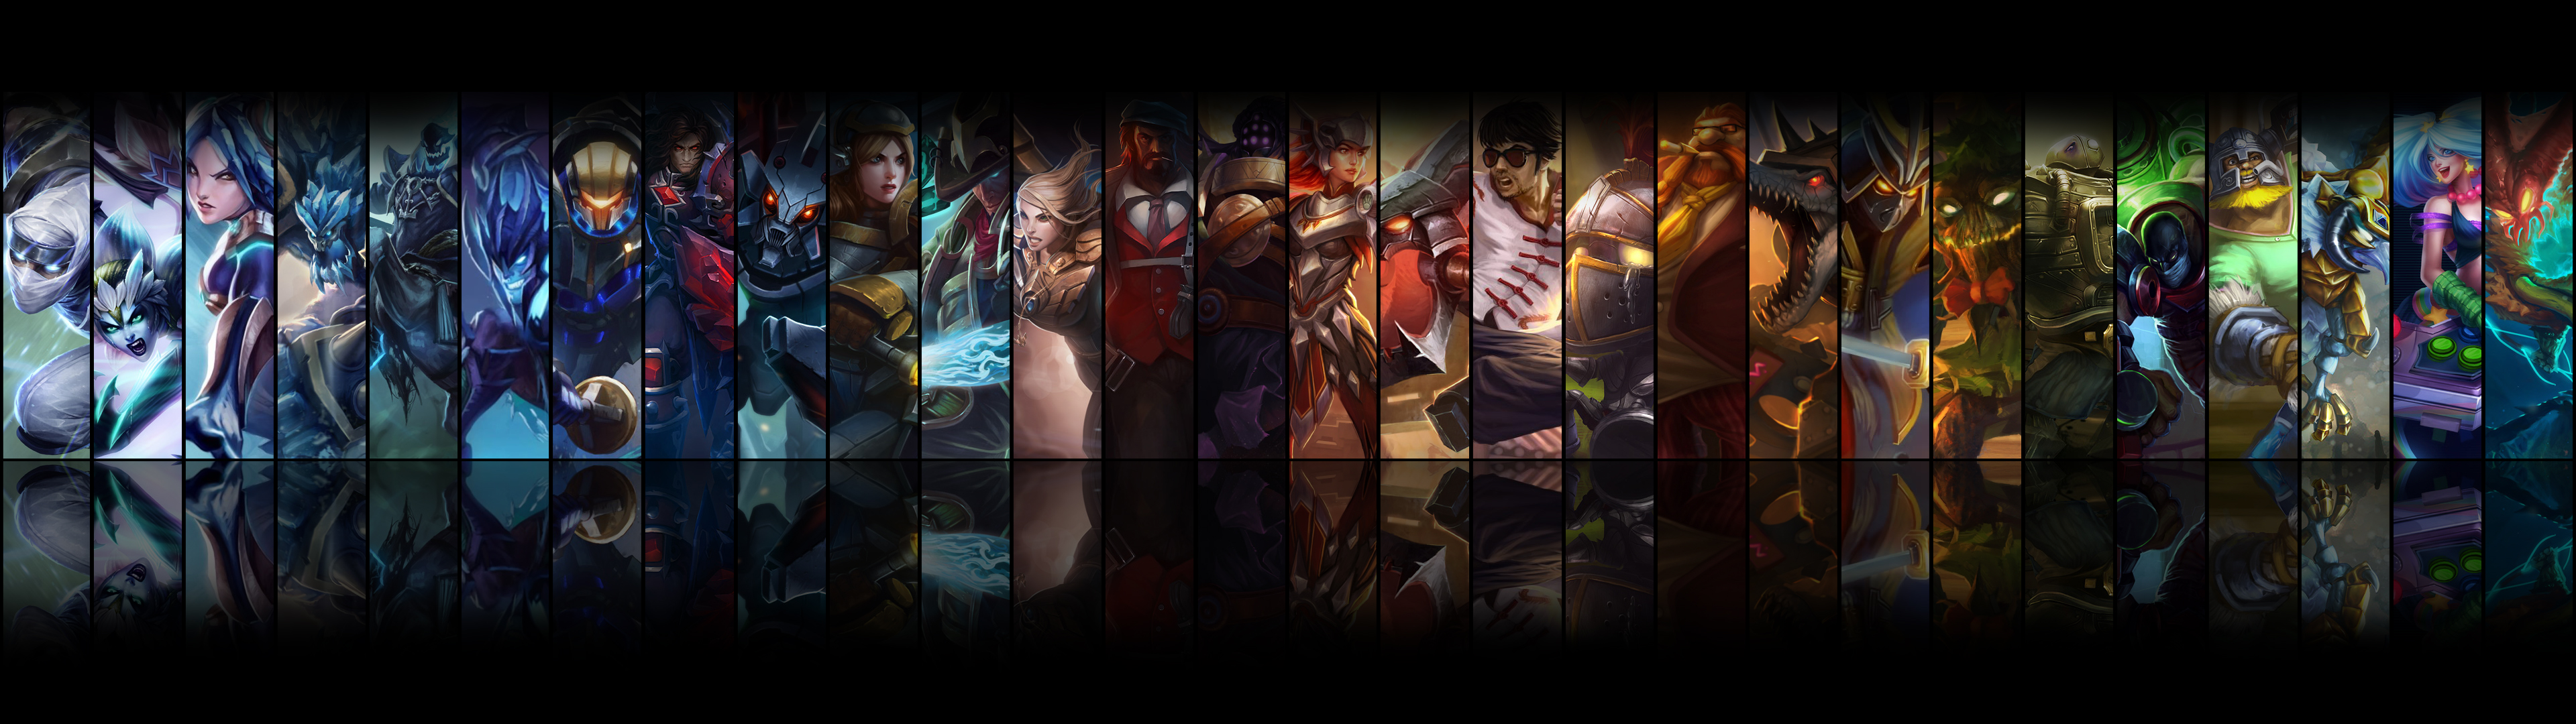 Free Download League Of Legends Dual Screen Wallpaper By Benn94